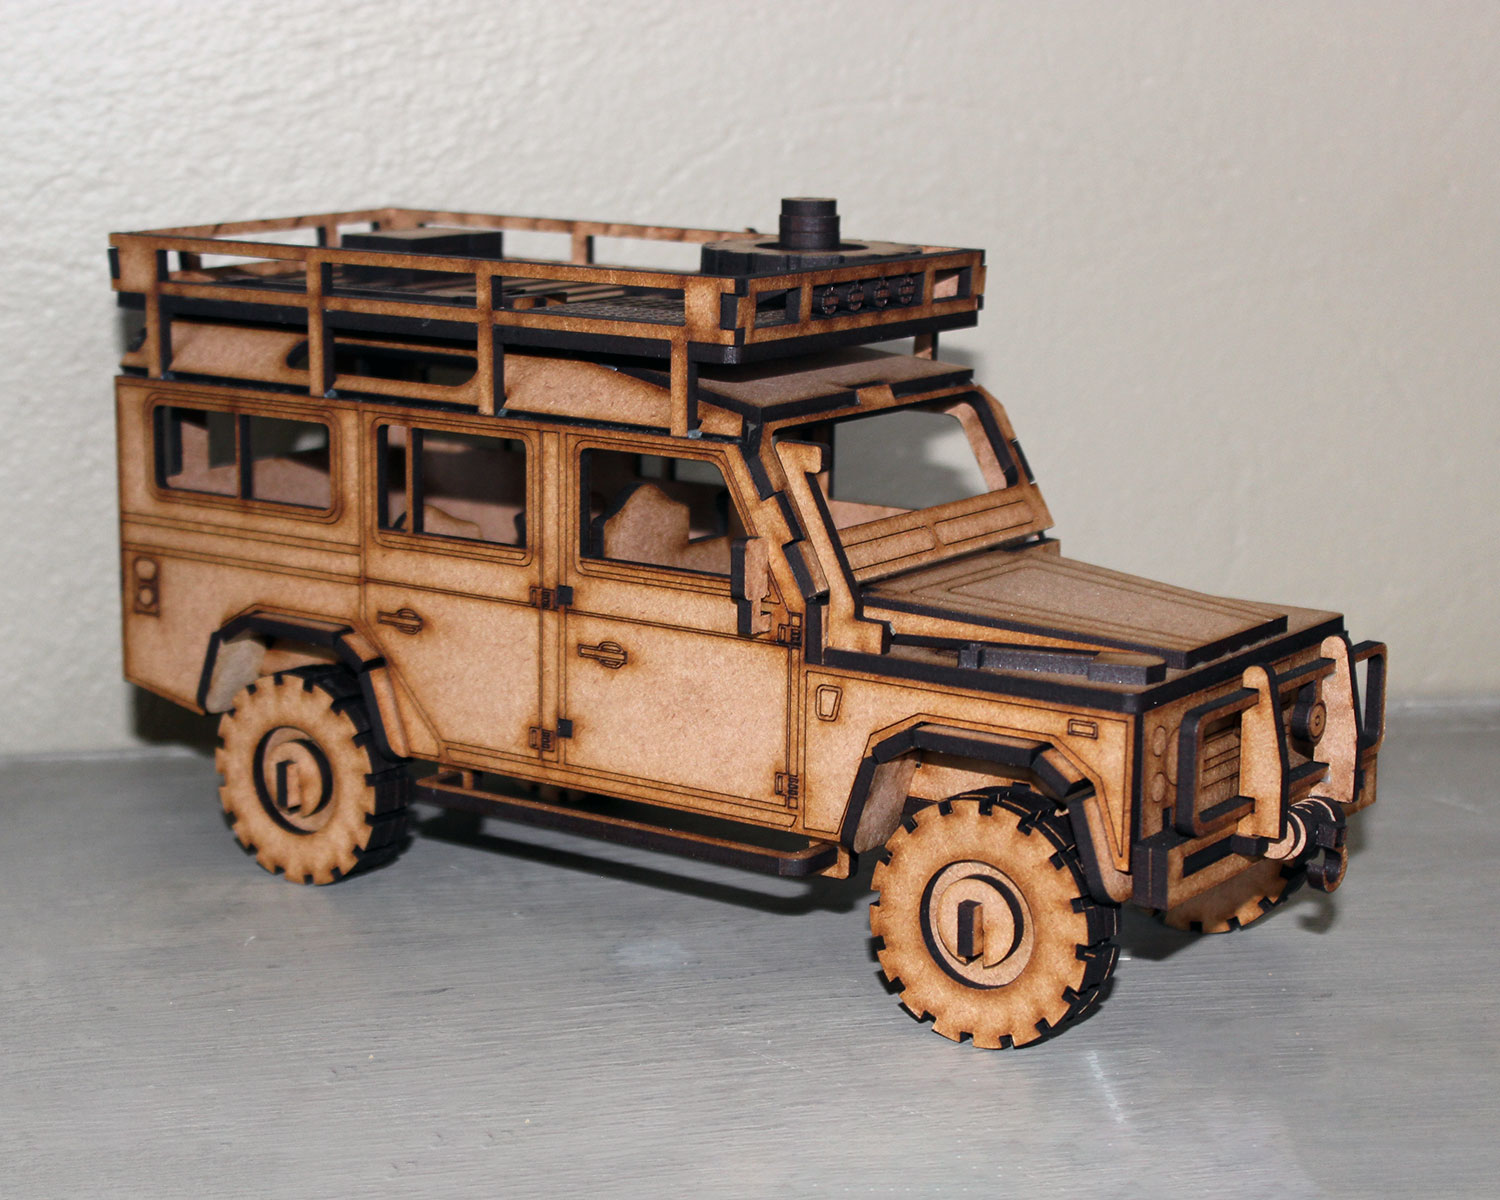 Defender Car 3d Puzzle Amp Accessories The Laser Company